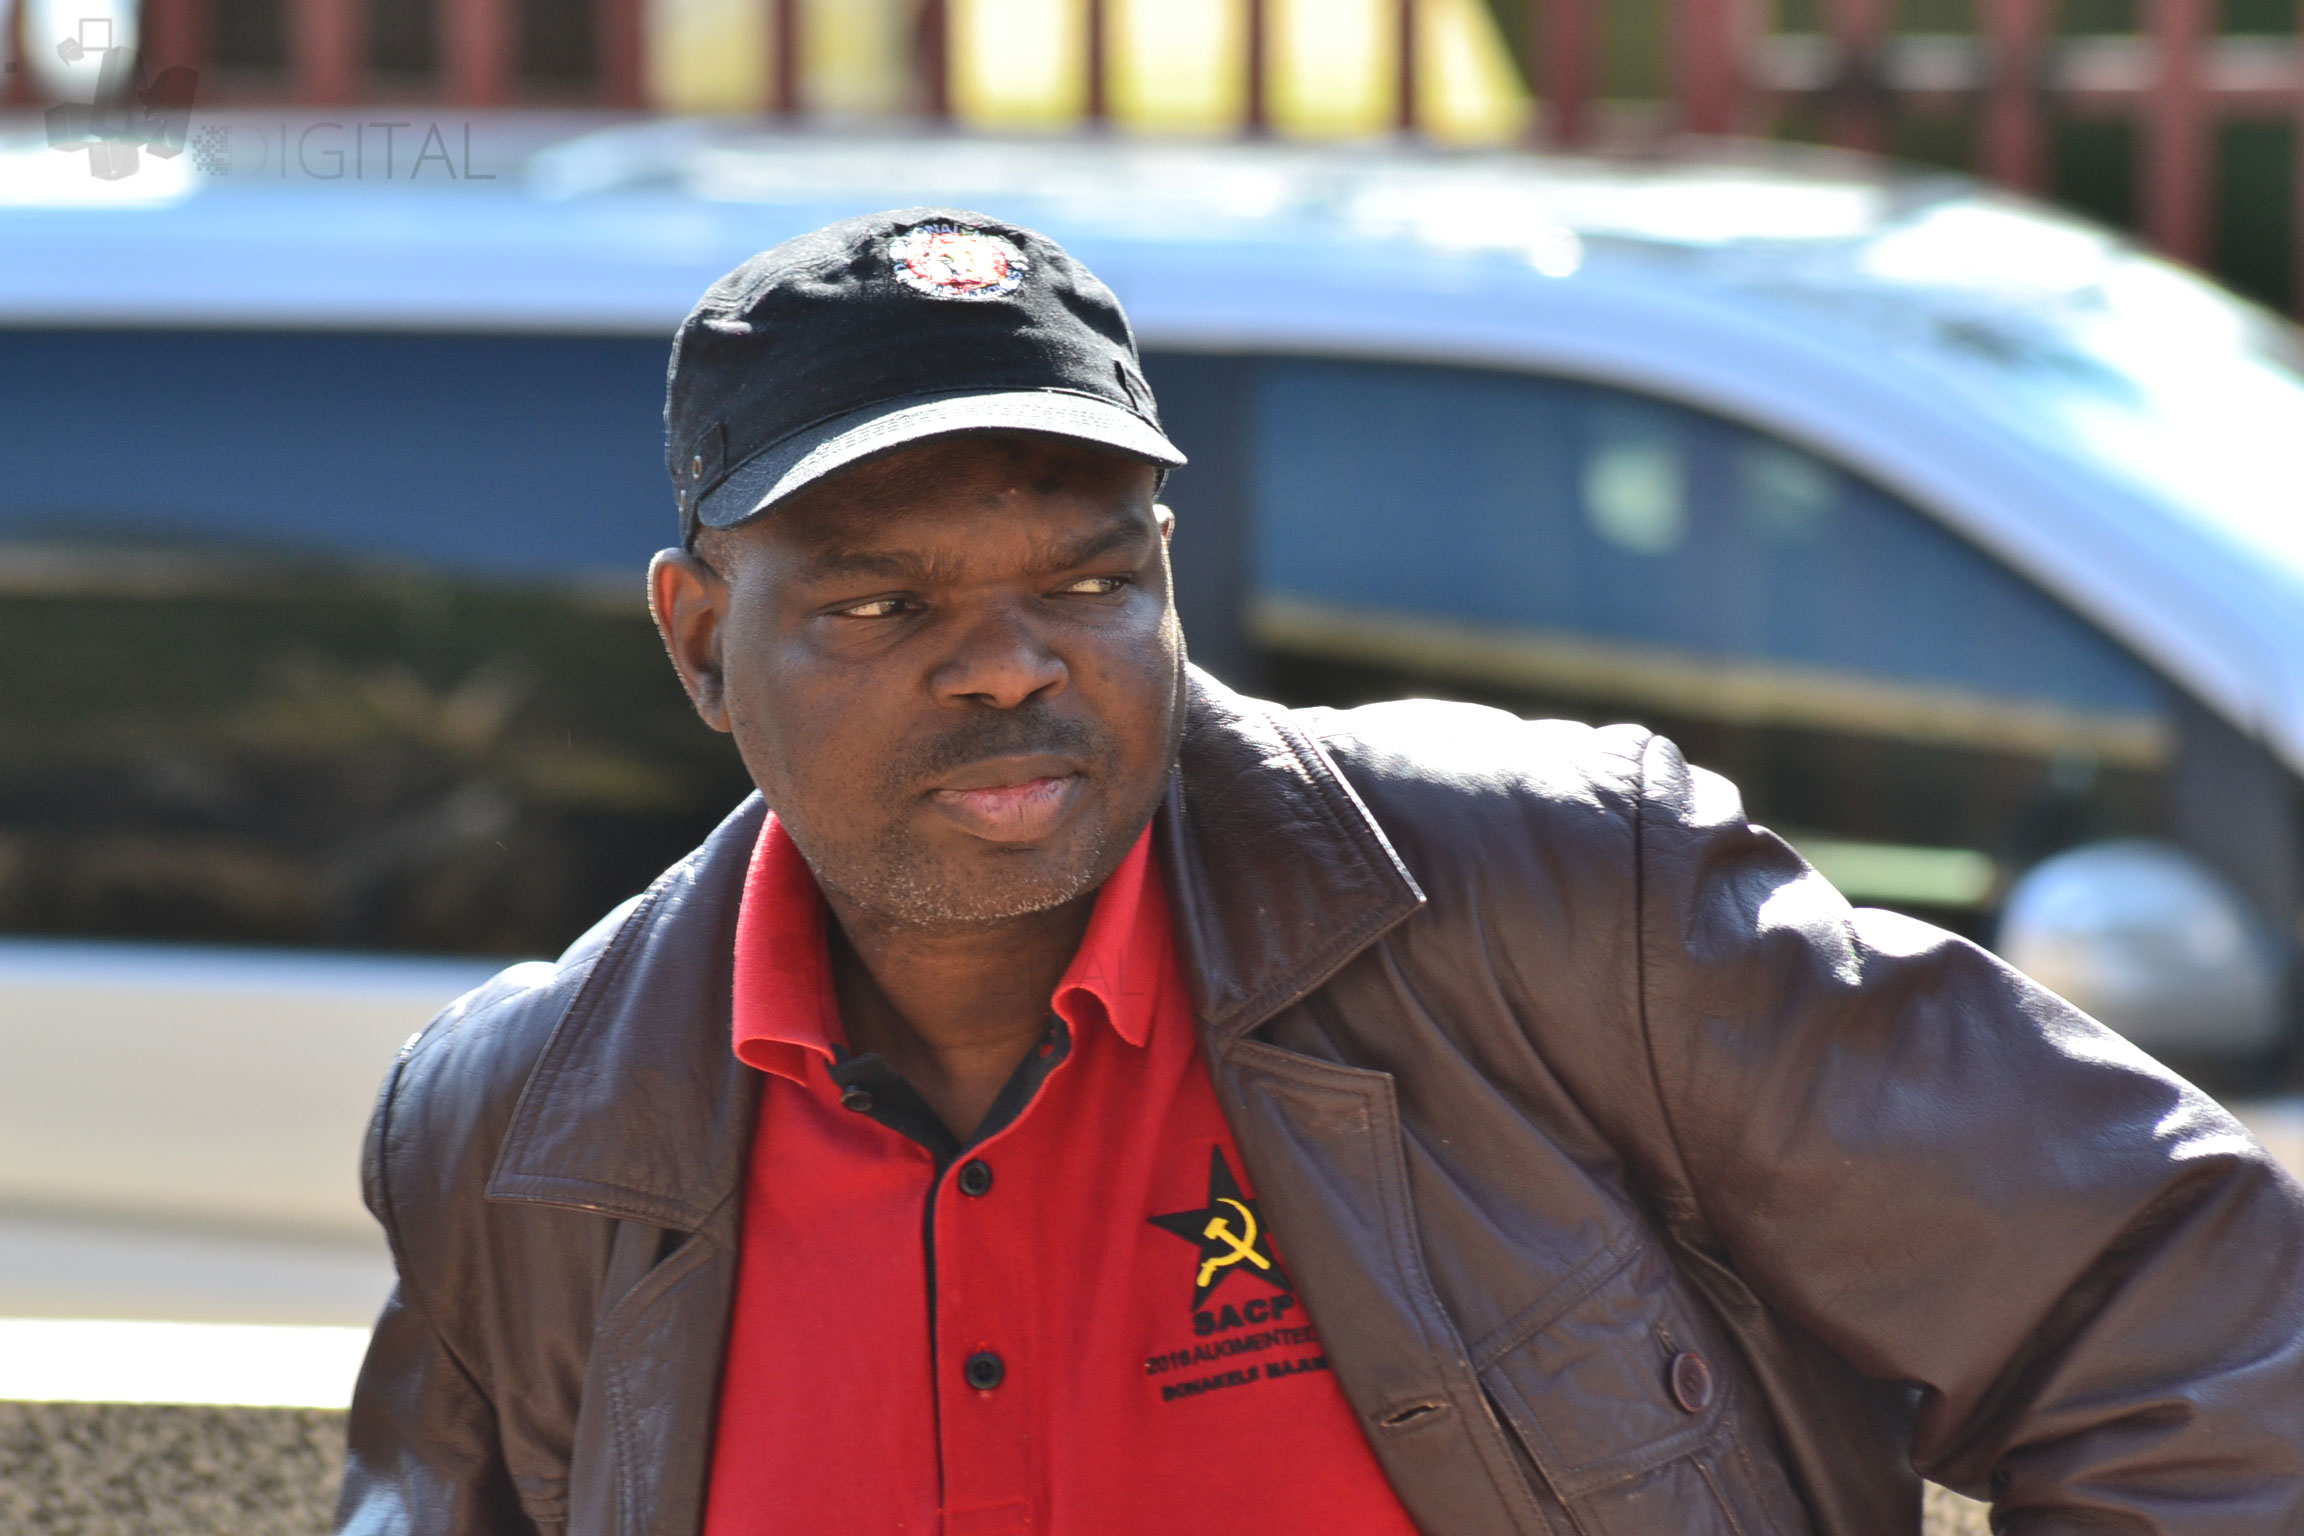 Majuba's return to MP legislature